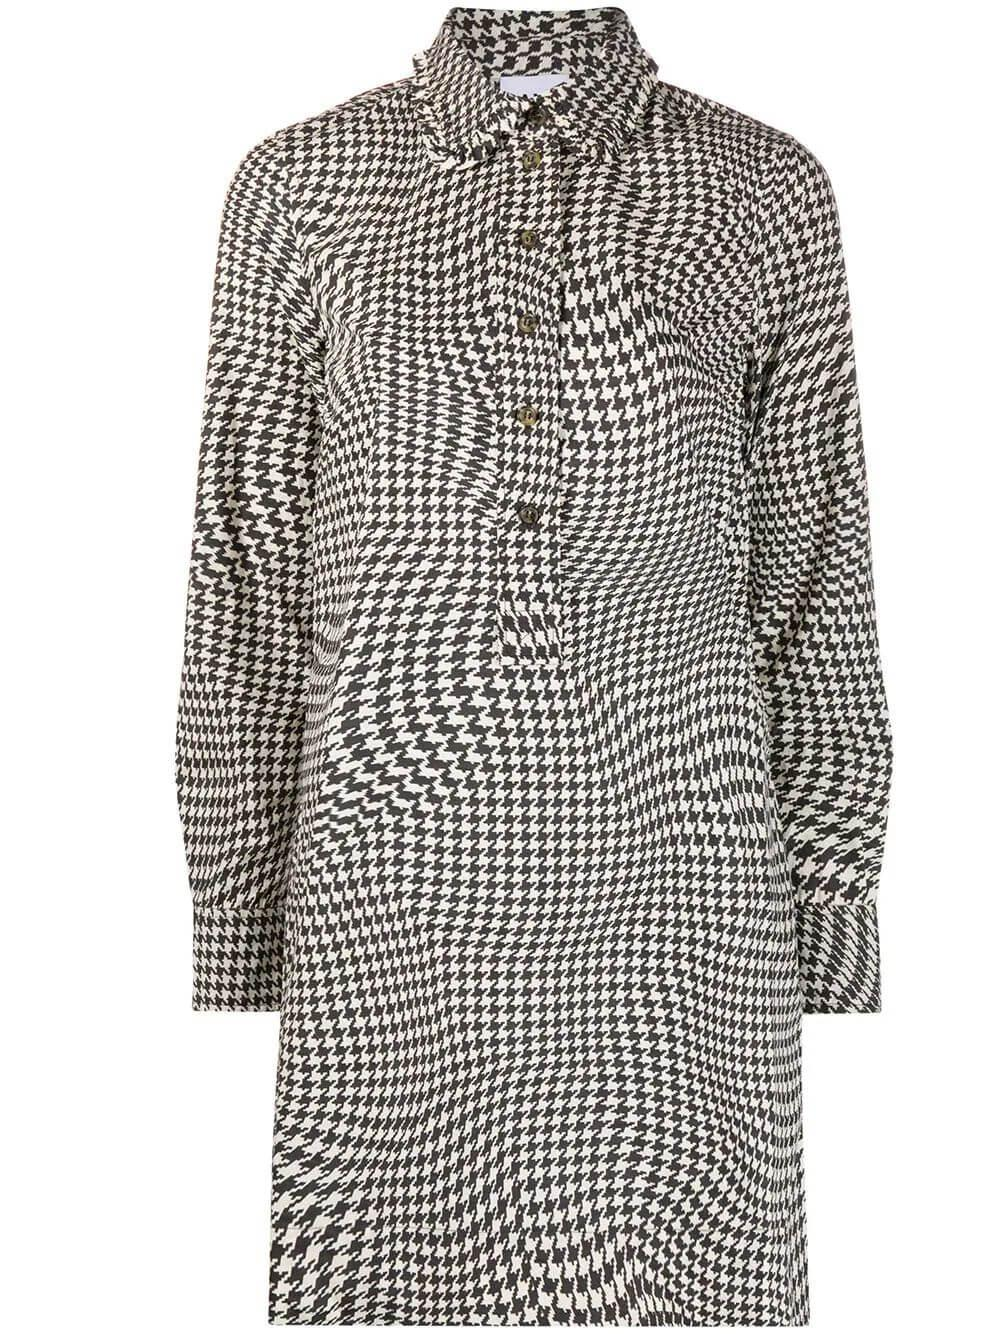 Printed Gingham Cotton Poplin Tunic Item # F5117